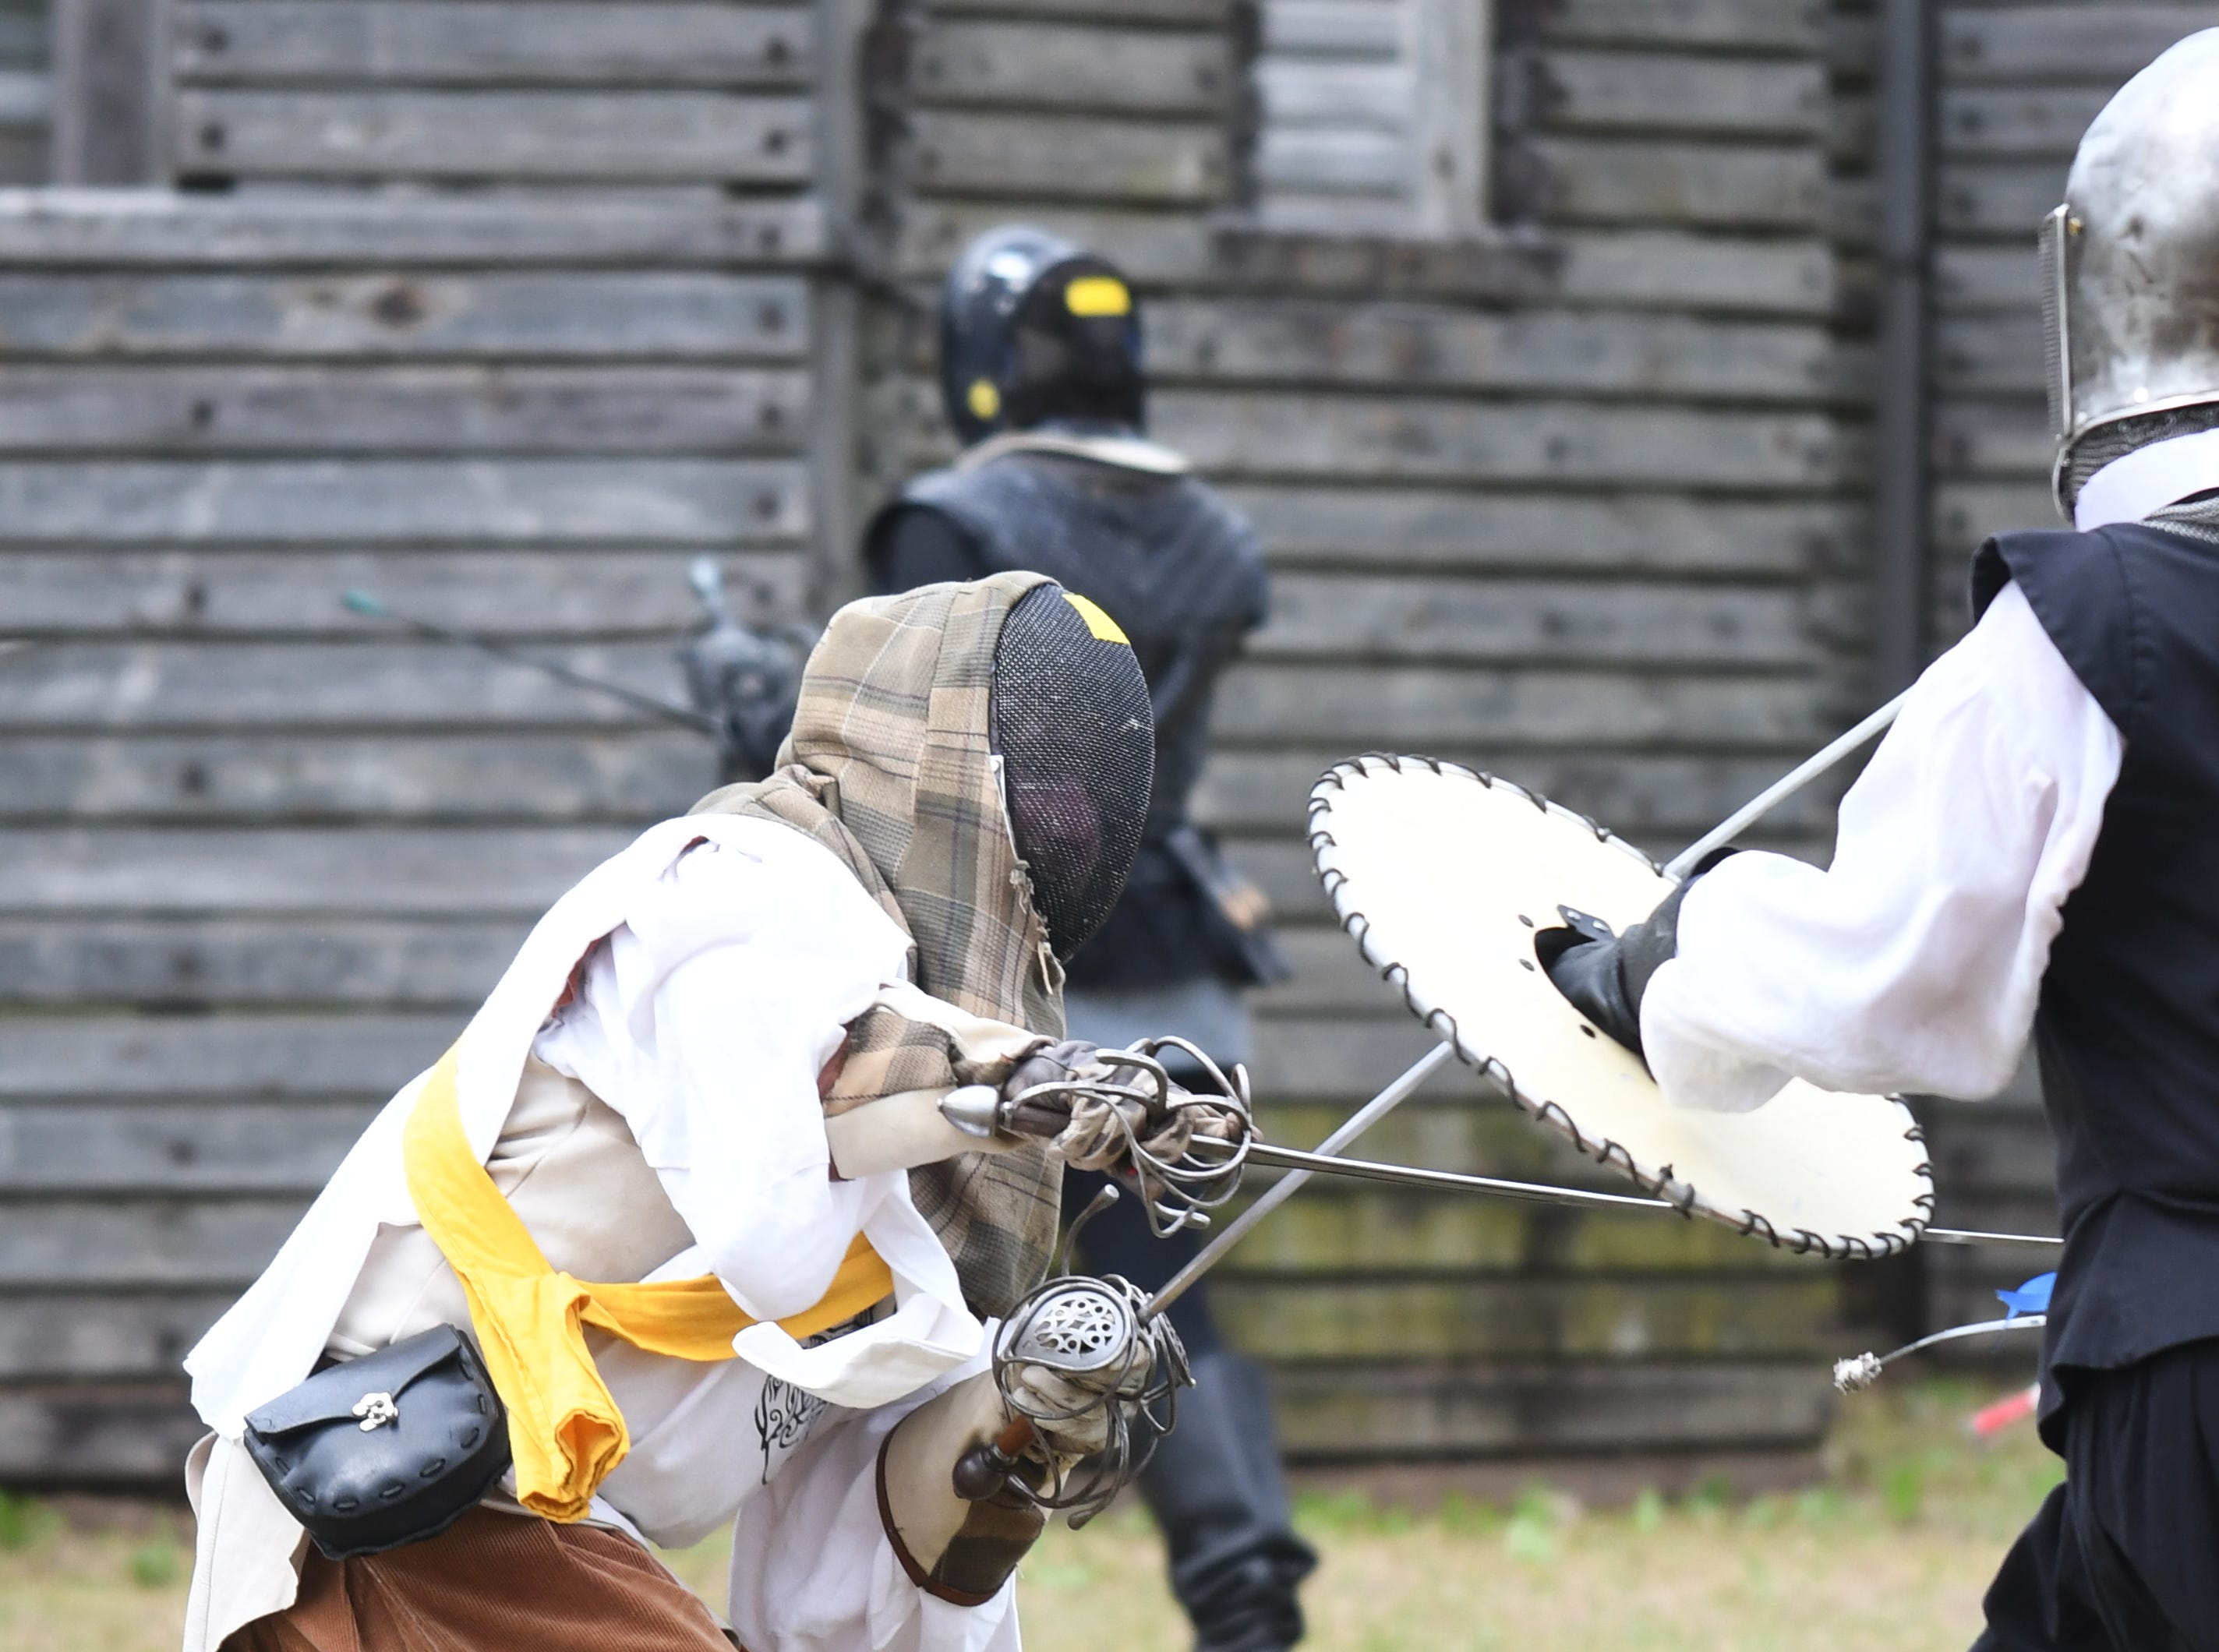 Participants battle in a fencing match during Gulf Wars XXVIII at King's Arrow Ranch in Lumberton on Monday, March 11, 2019.